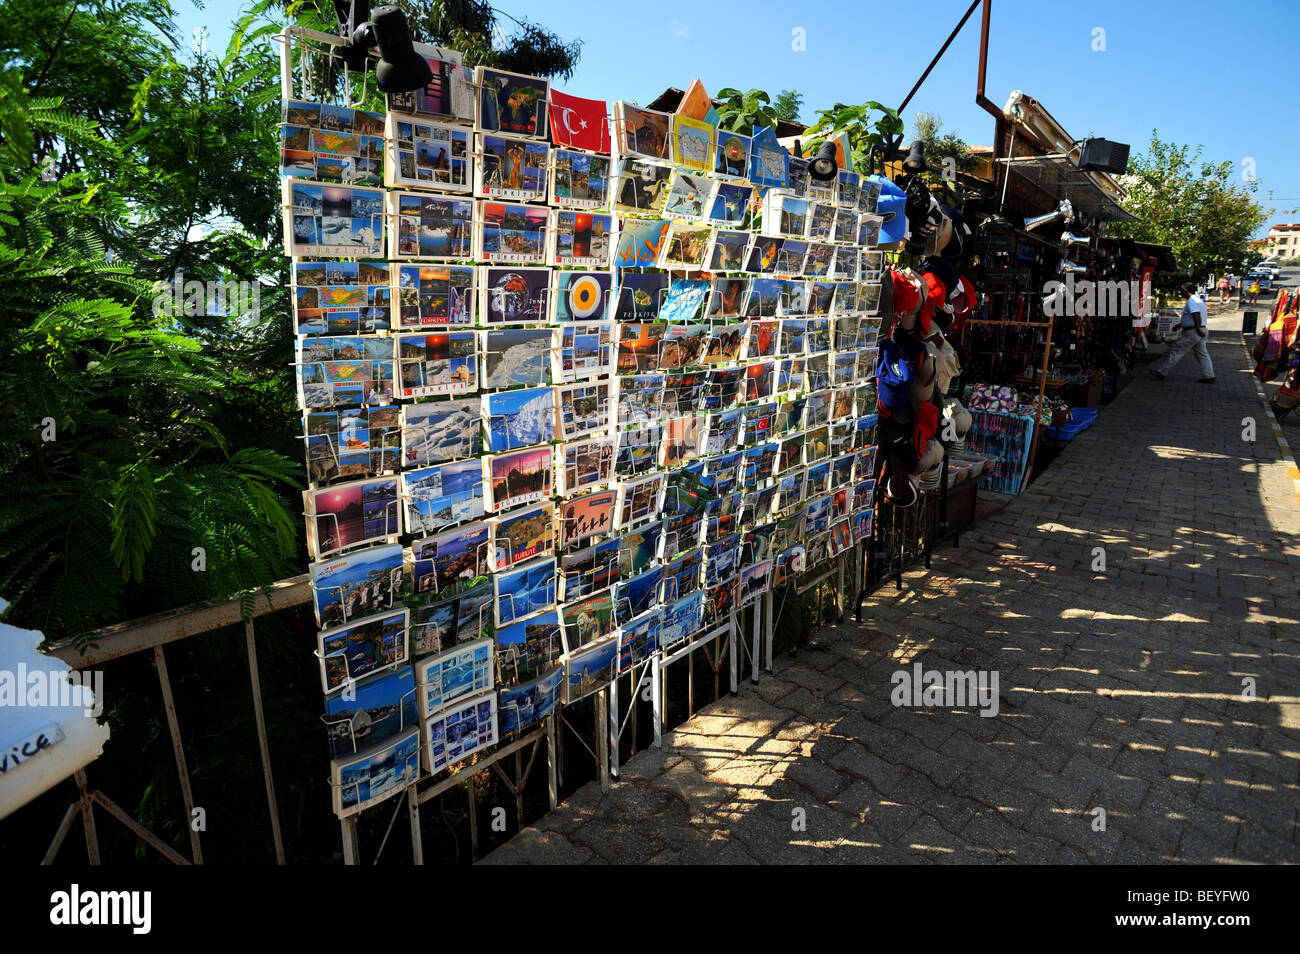 Rows of postcards on sale outside a shop in kalkan - Stock Image